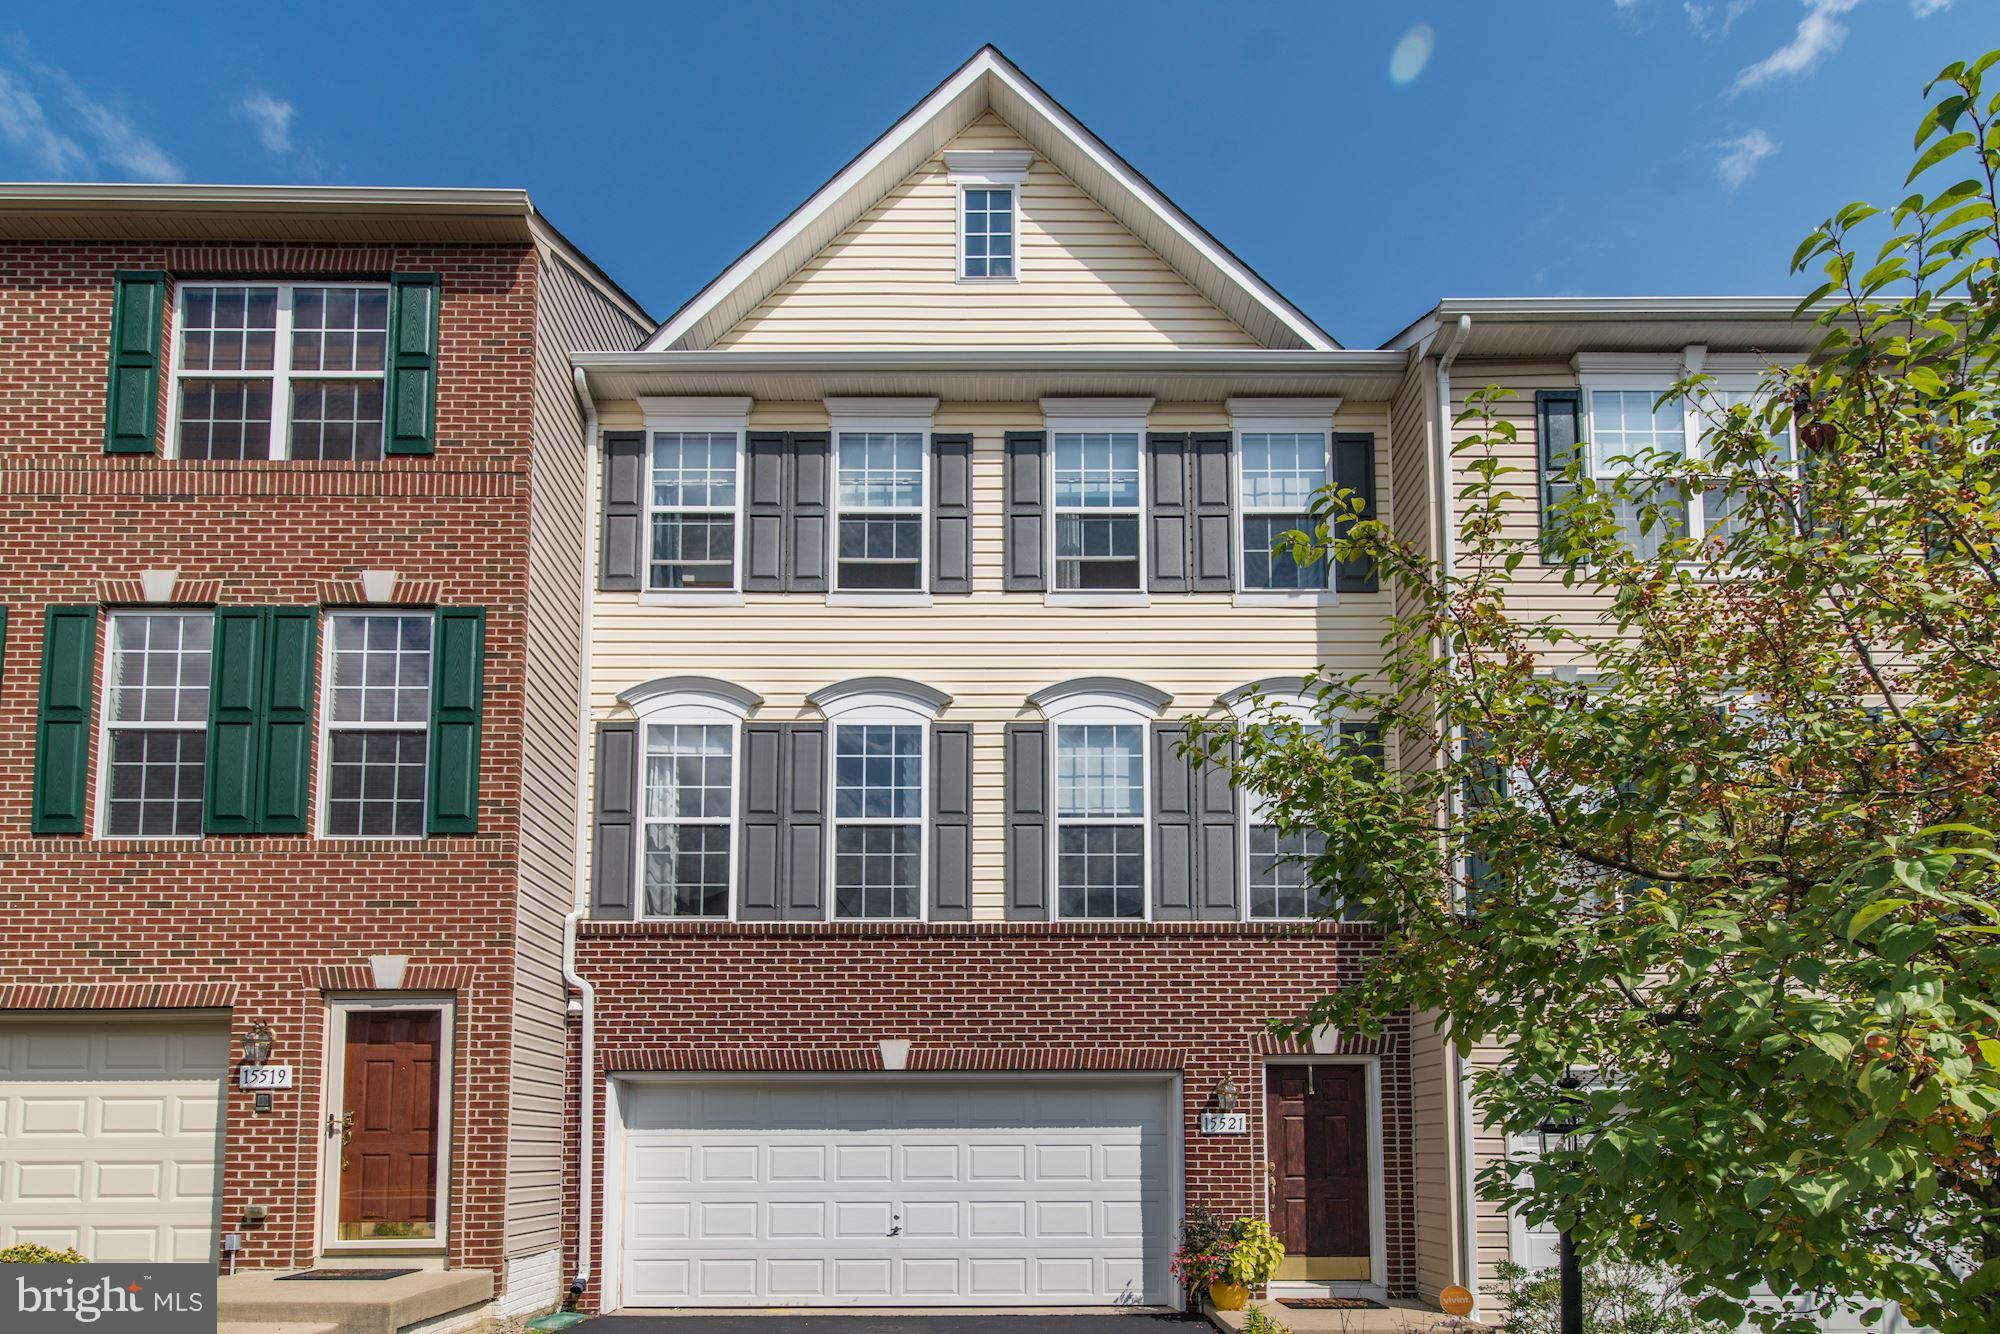 Fantastic, spacious & bright, 3 bedroom 3.5 bath Townhome. Close to 95, VRE, Commuter lot, Wegmans, Potomac Mills & Shopping! Granite Countertops, Stainless Steel appliances, open floor plan, 2 Car attached garage! Finished lower level with Fireplace! Beautiful Master Suite w/walk-in closets and bath with soaking tub to relax! Checkout Interactive Virtual Open House tour.